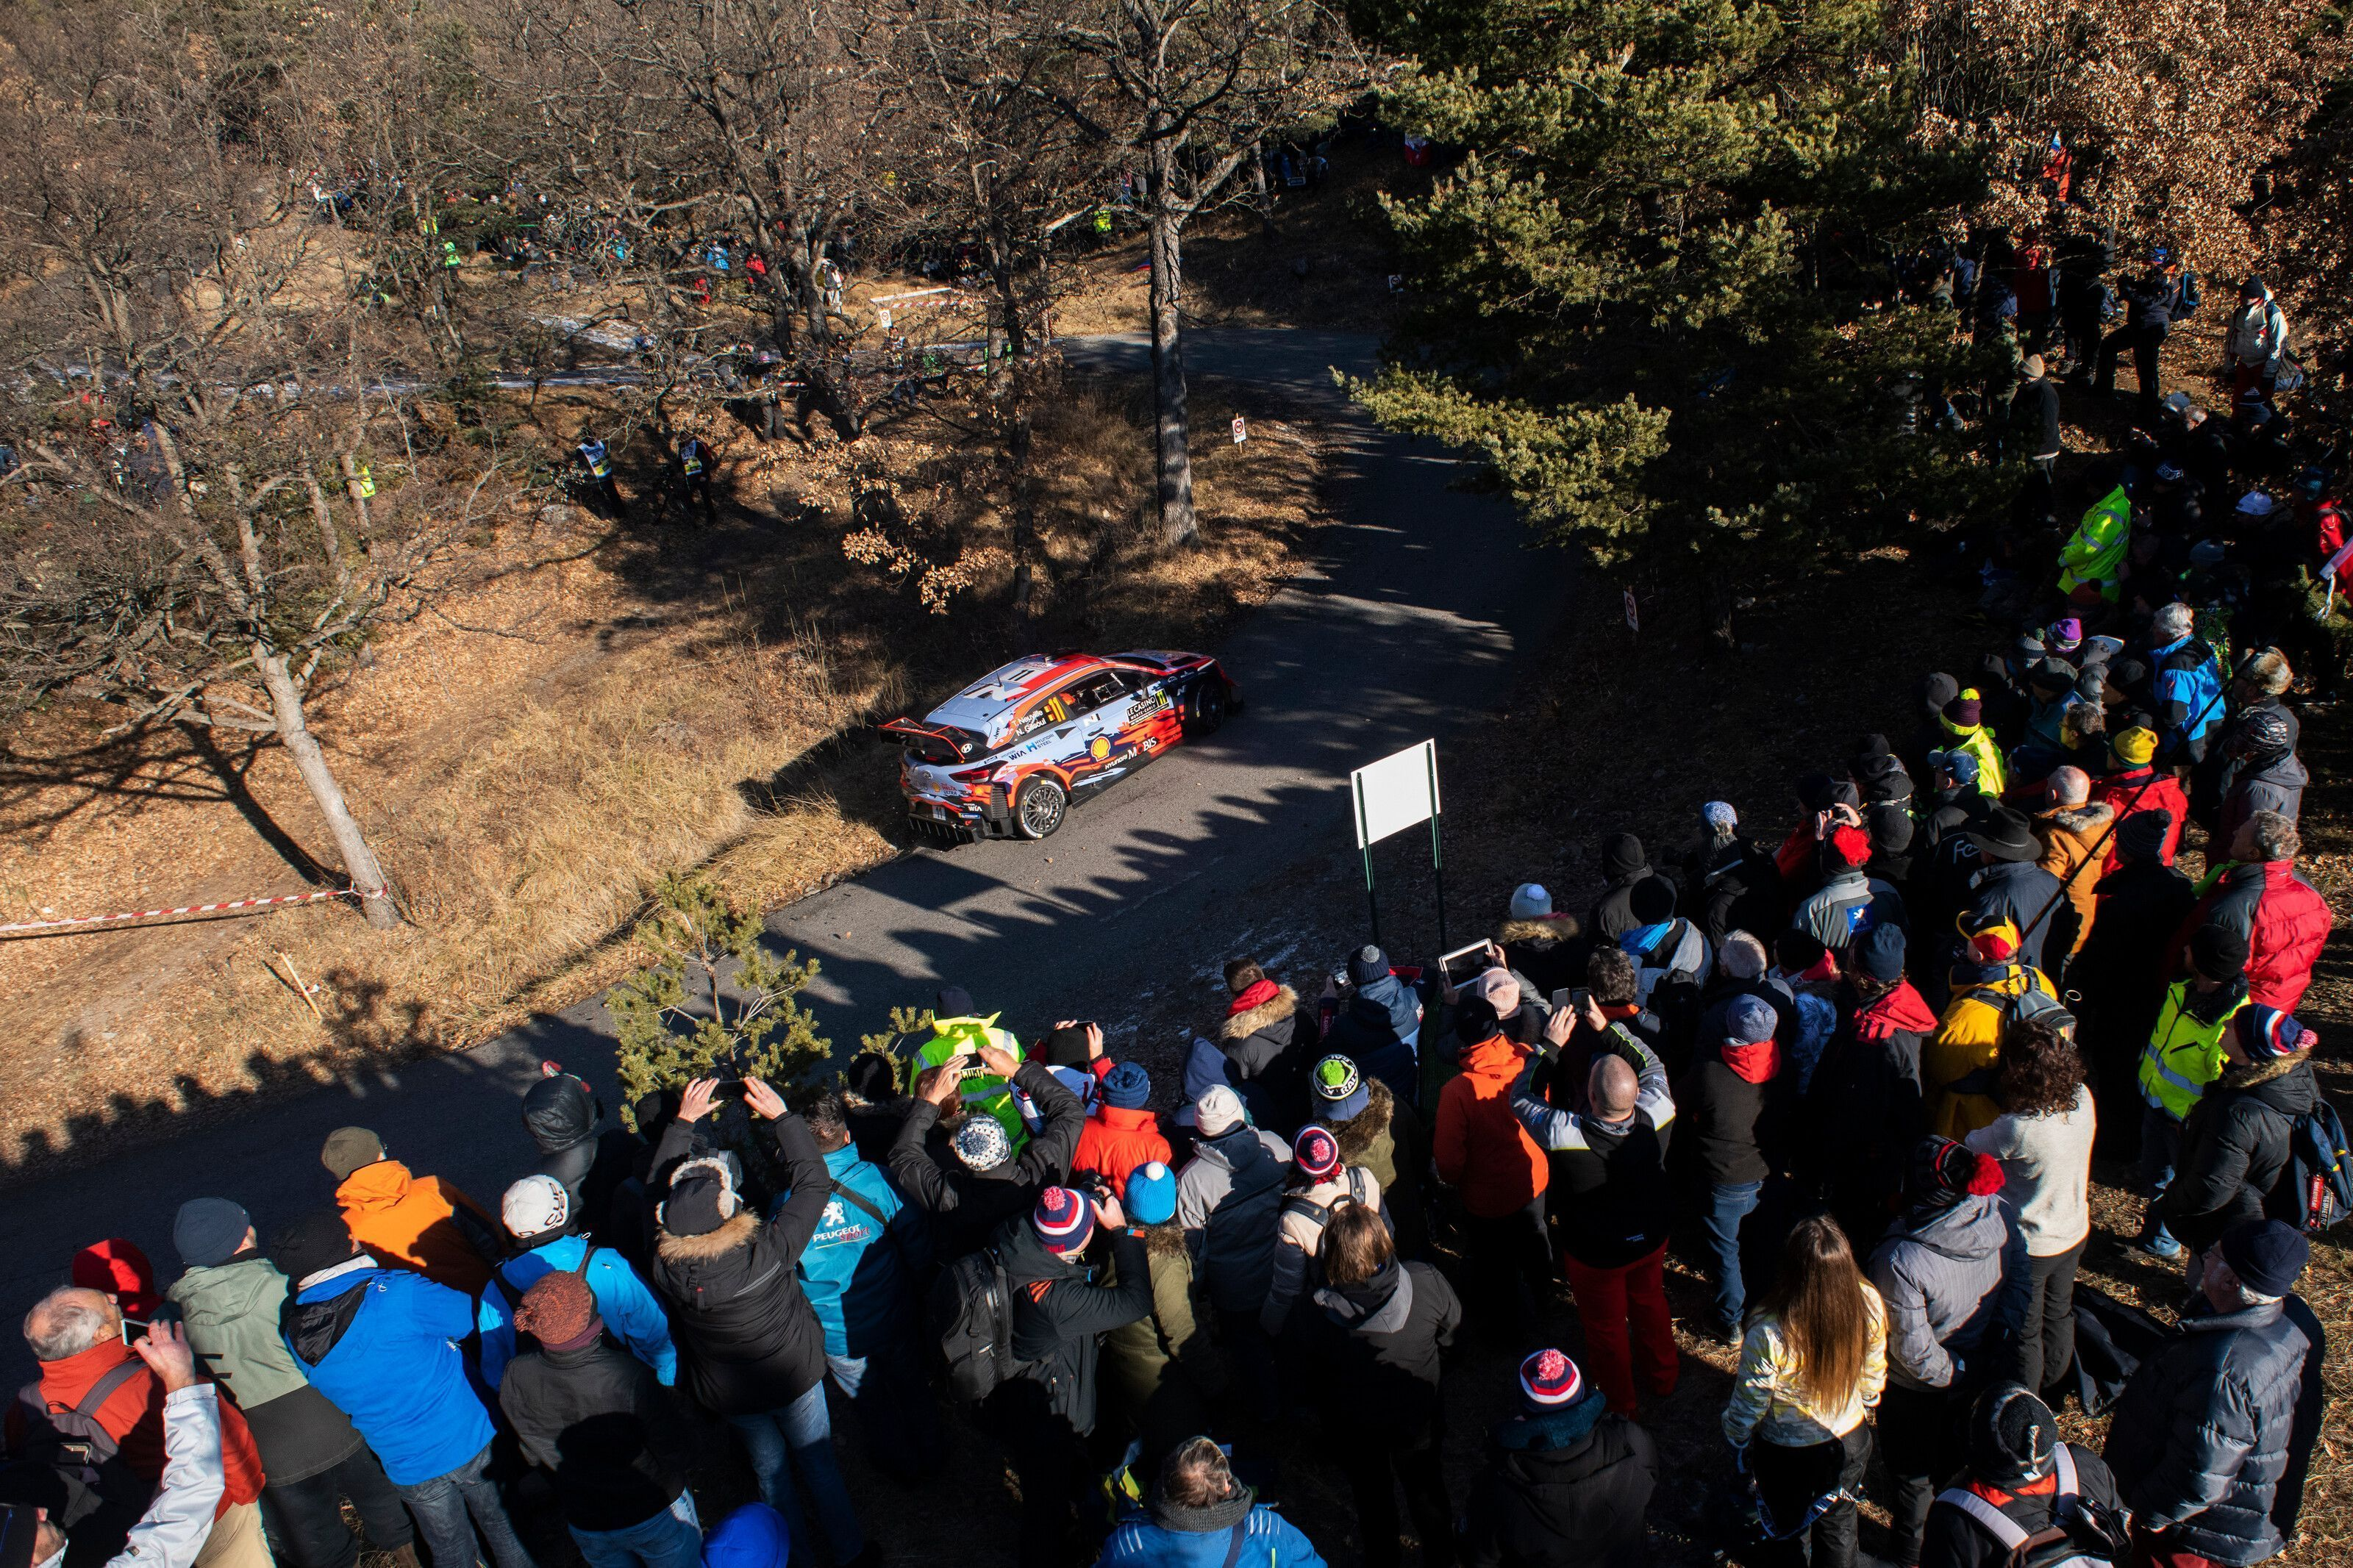 Siemens ties up with the FIA for rally spectator safety